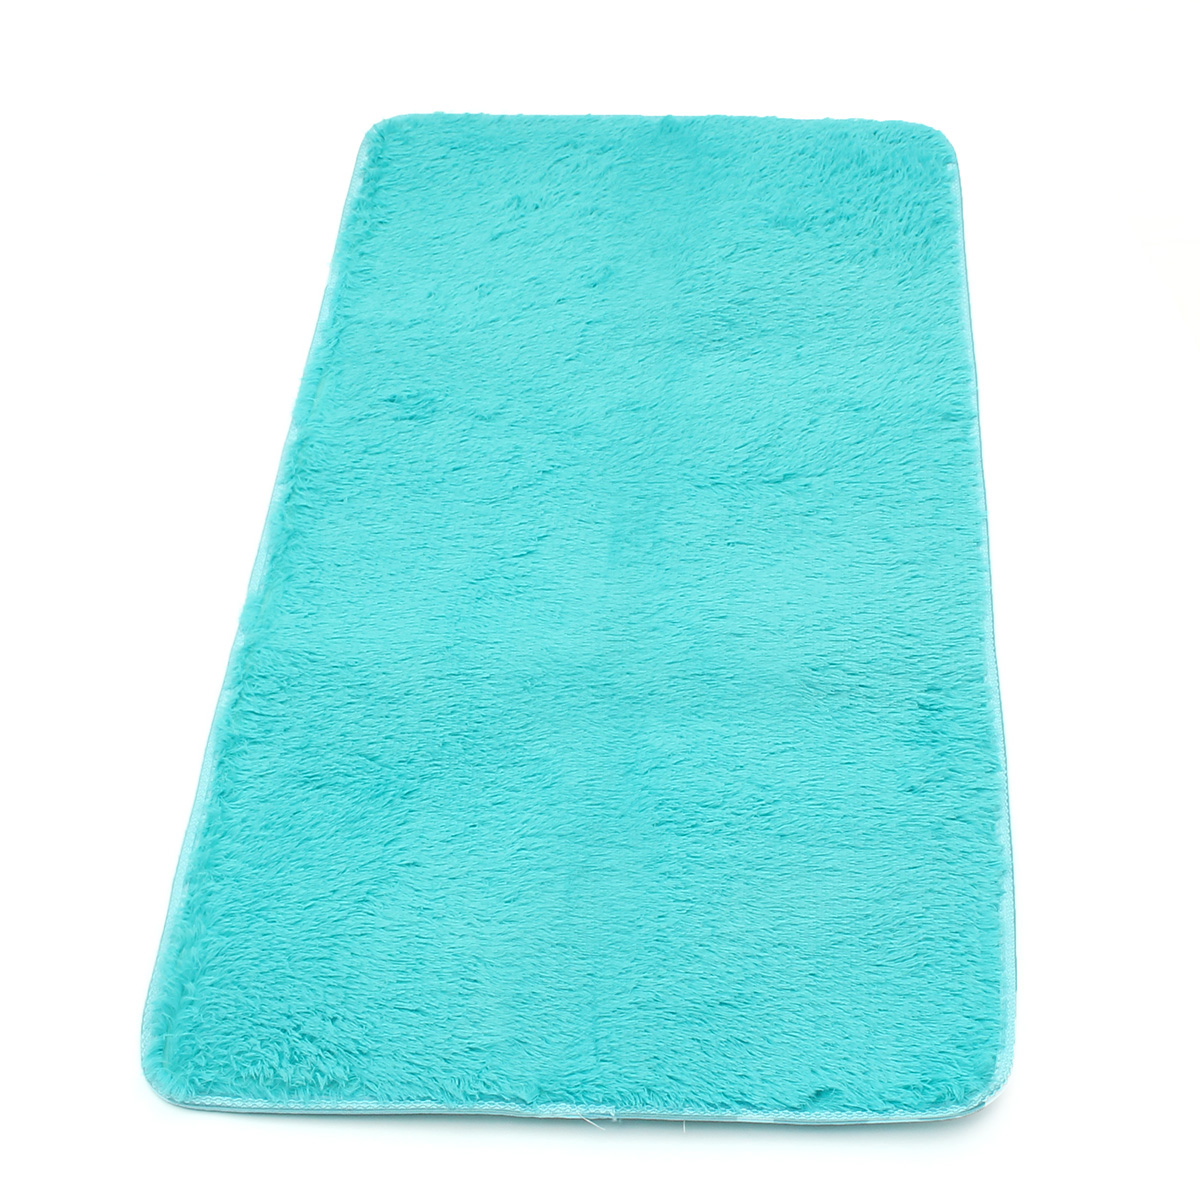 60 x 120cm Anti-skid Shaggy Fluffy Area Rug Bedroom Carpet Floor Mat Parlor Decor